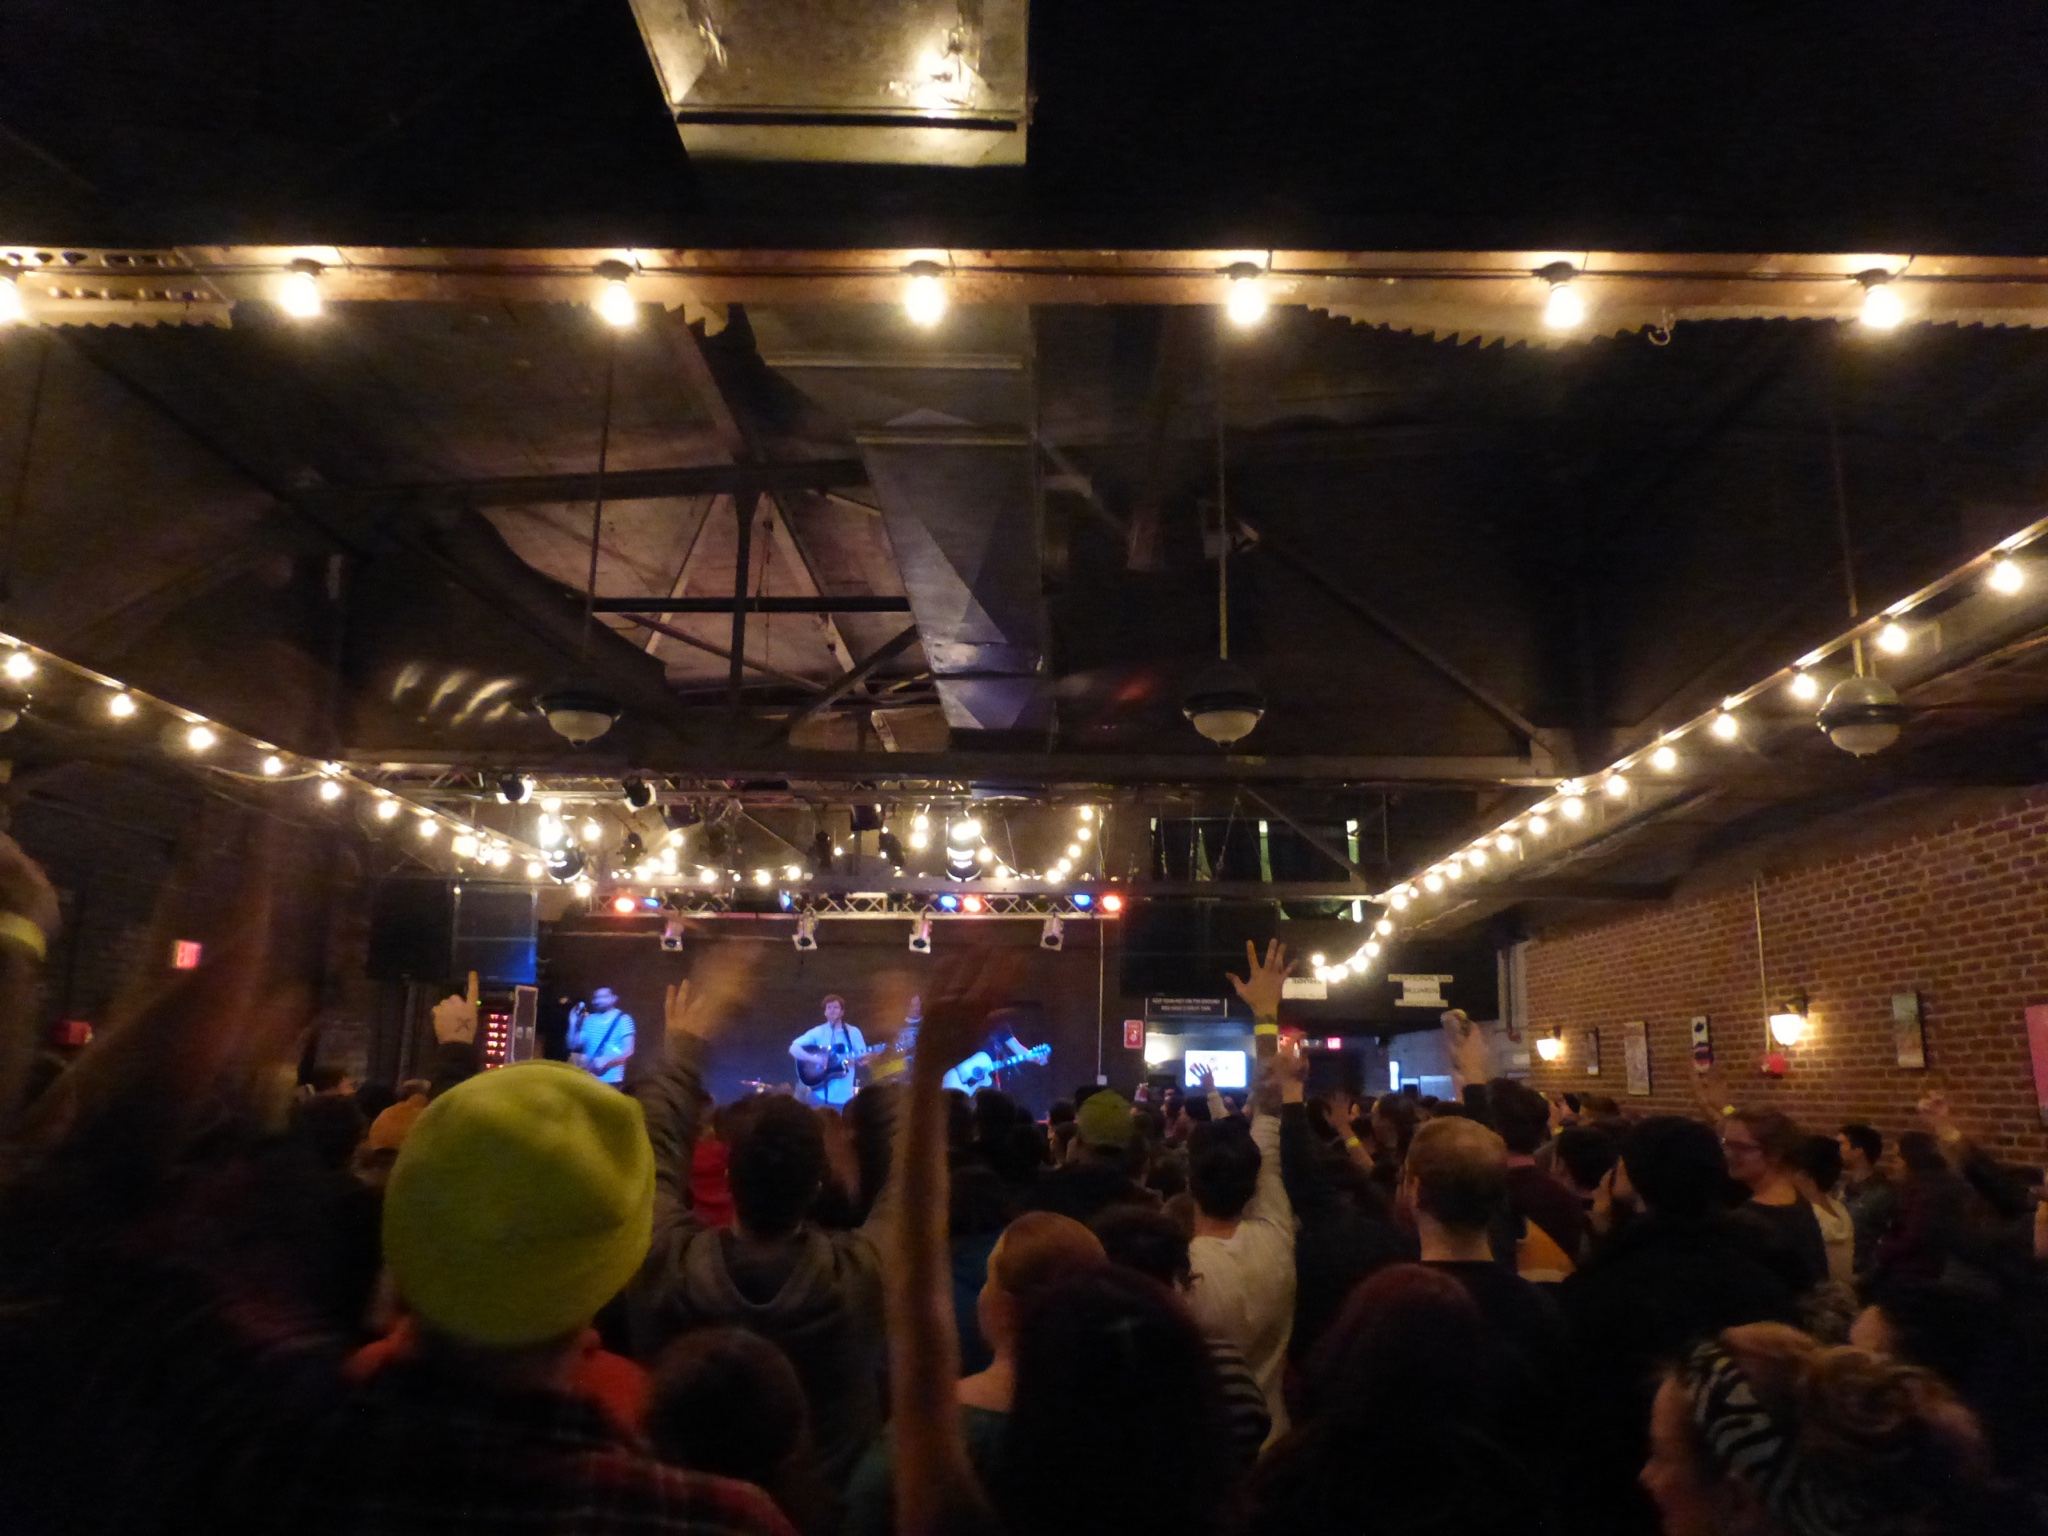 Saves The Day (December 17, 2013)